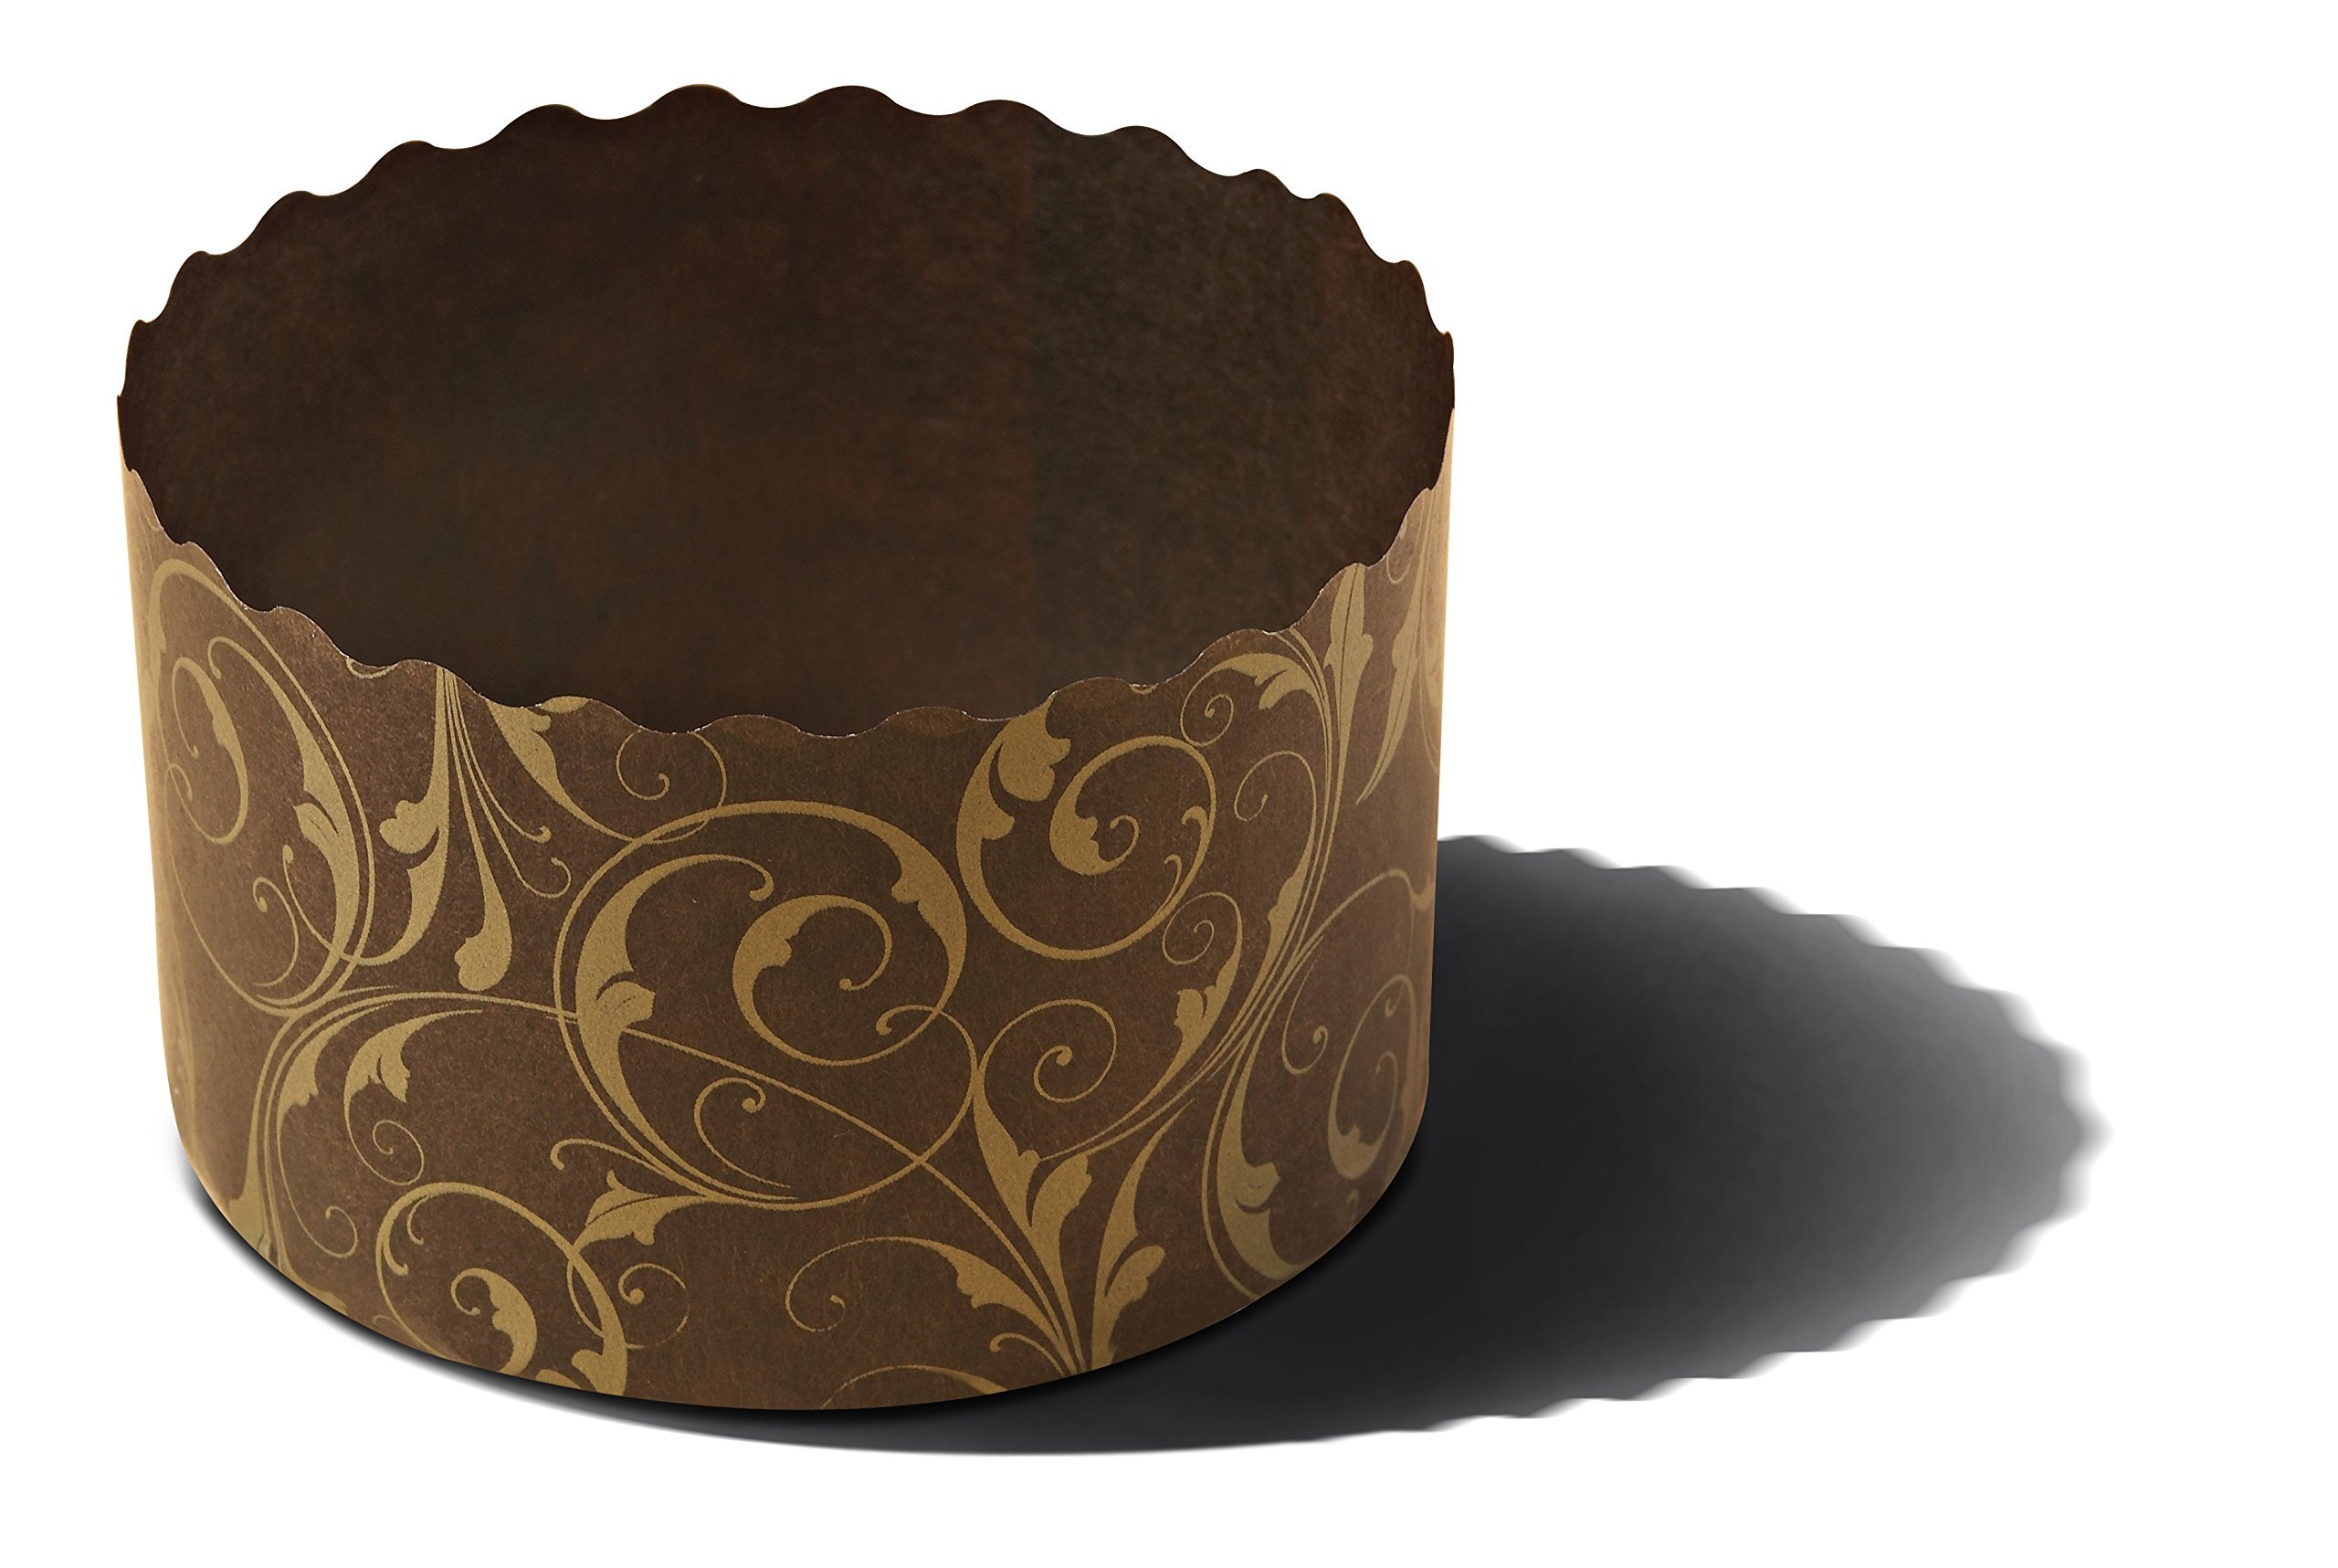 EcoBake Panettone Molds Pa6045fg Case of 2000